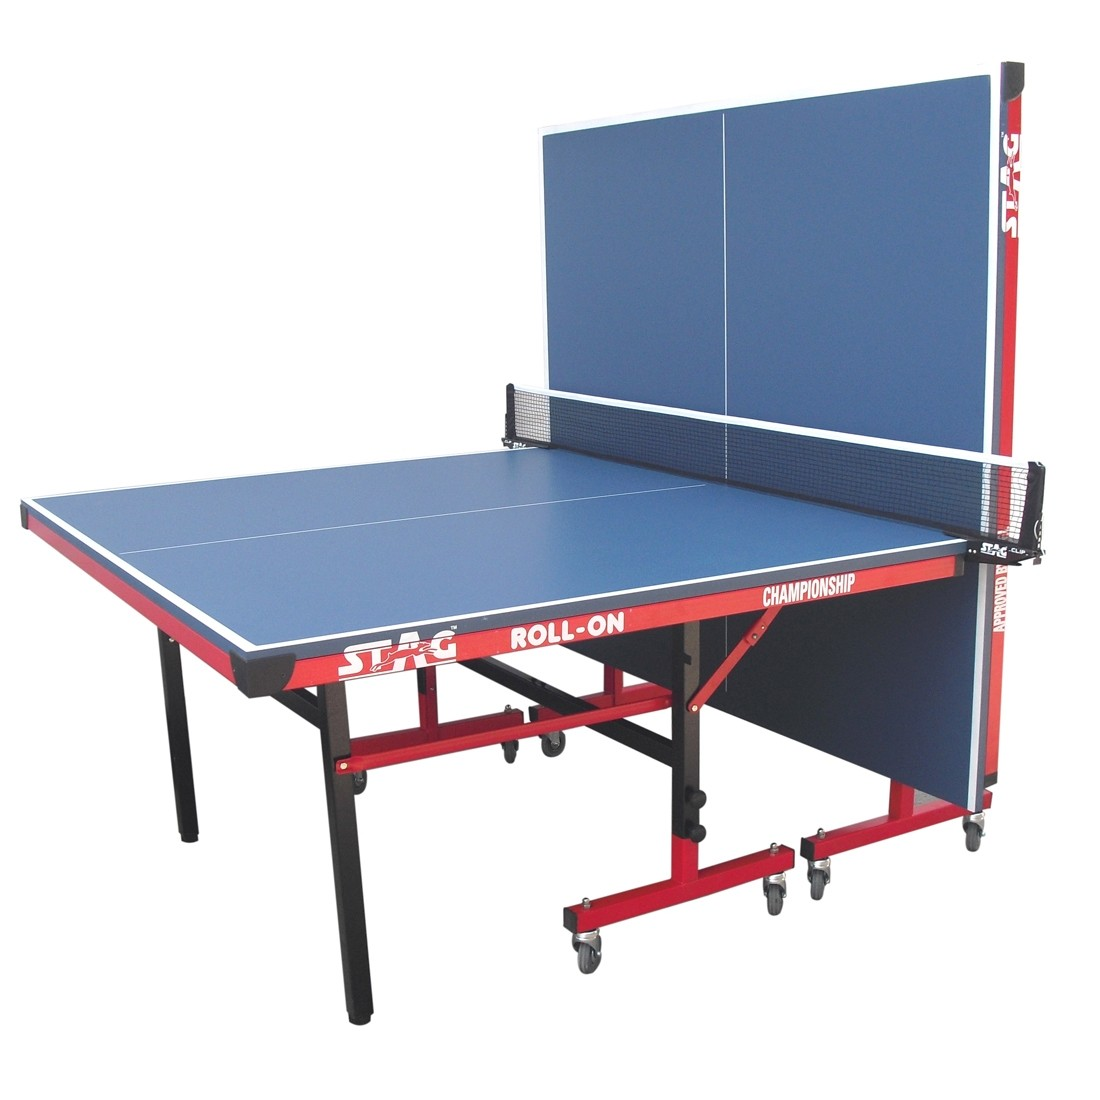 Stag Championship - Table Tennis Tables - Table Tennis - Sport